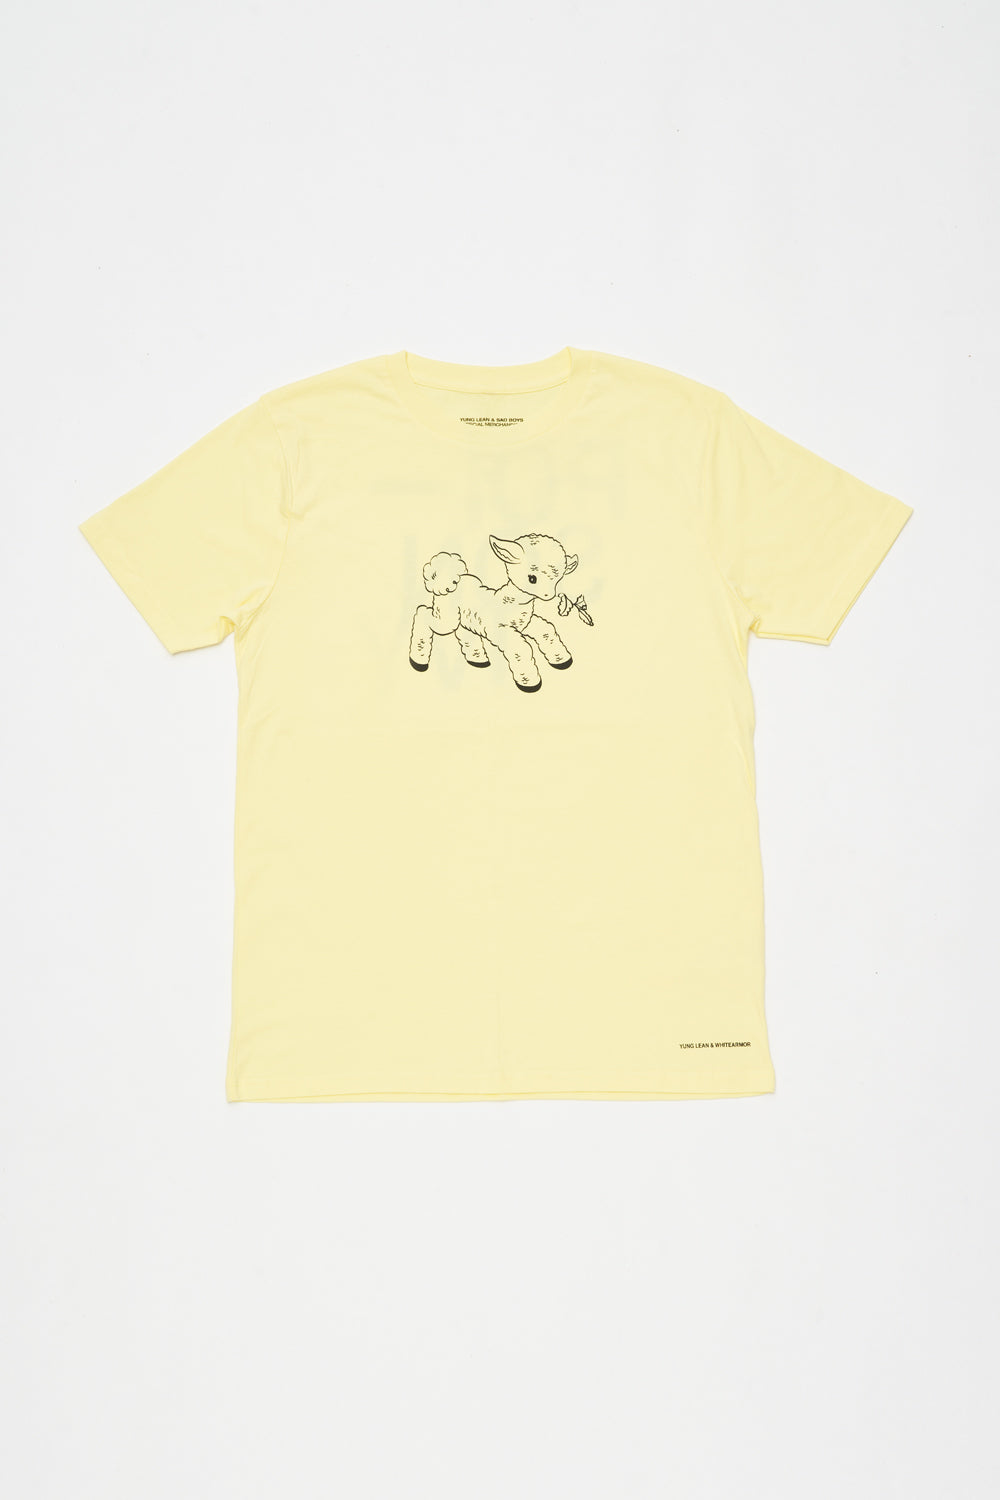 POISON IVY T-SHIRT (YELLOW)